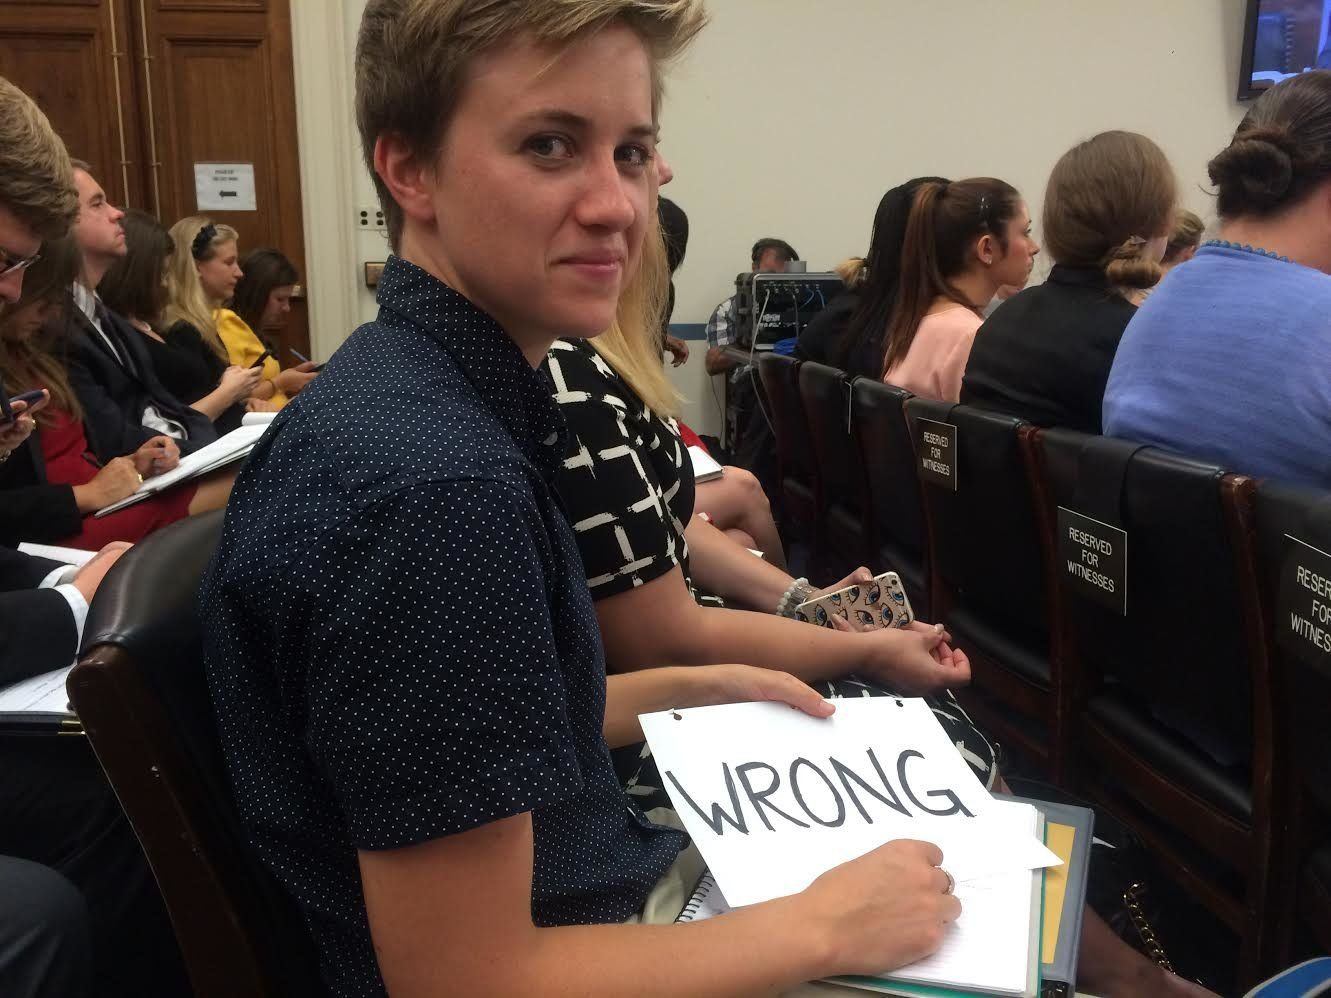 A Stanford University student at a House Education and the Workforce Committee hearing holds a sign to oppose some witnesses'